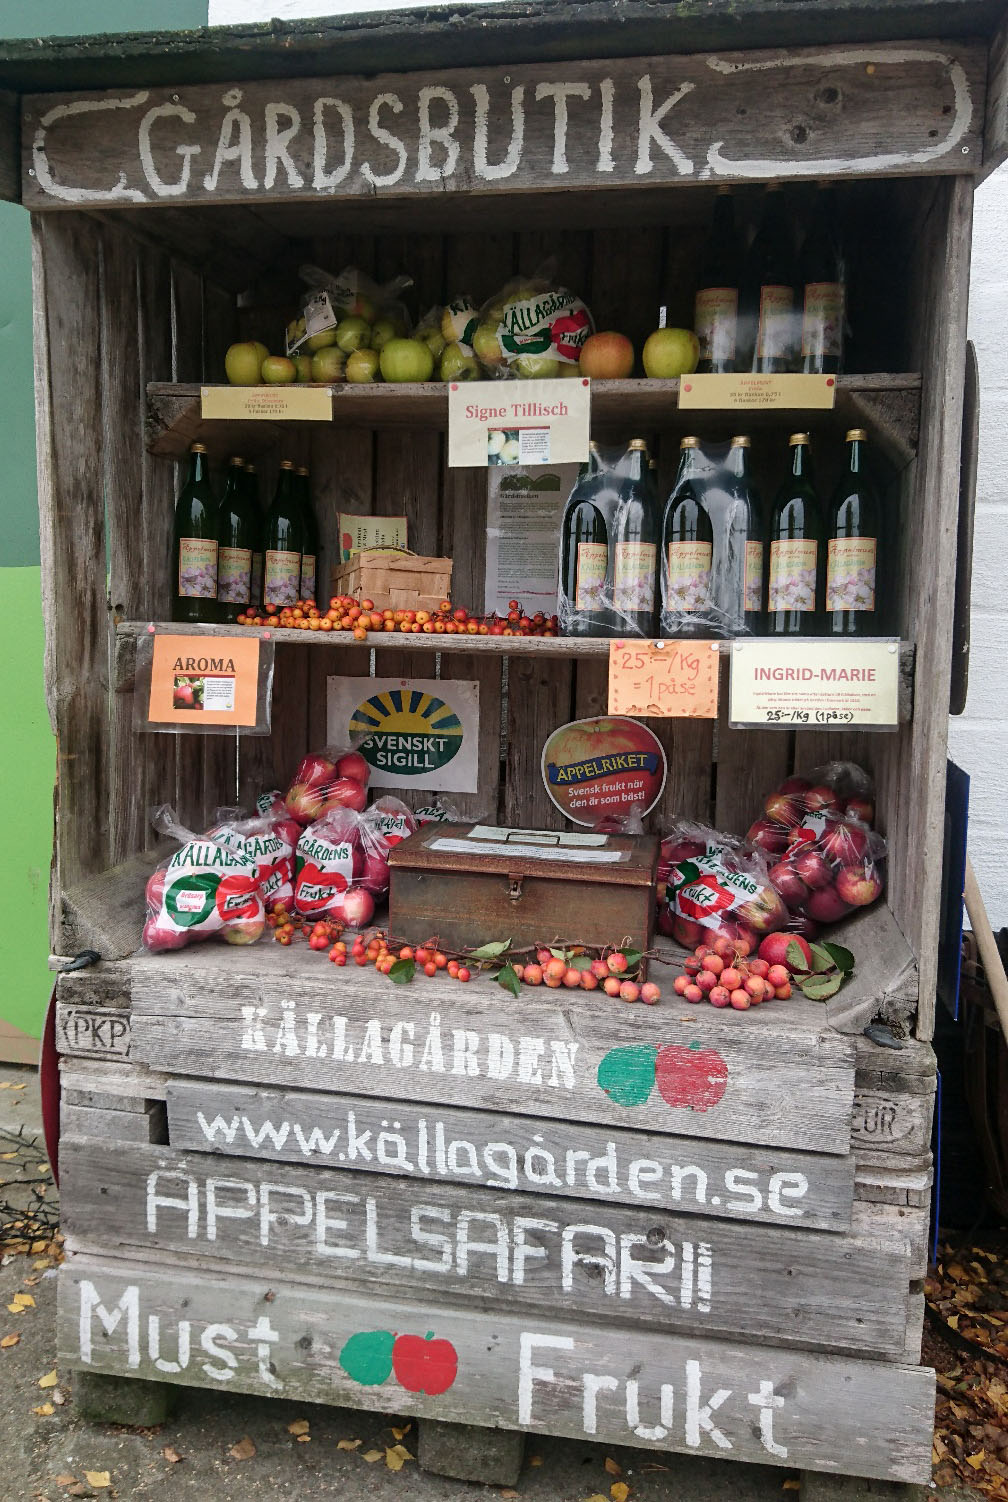 At our farm stand fpr self-service you can buy our apple juice and apples in season.